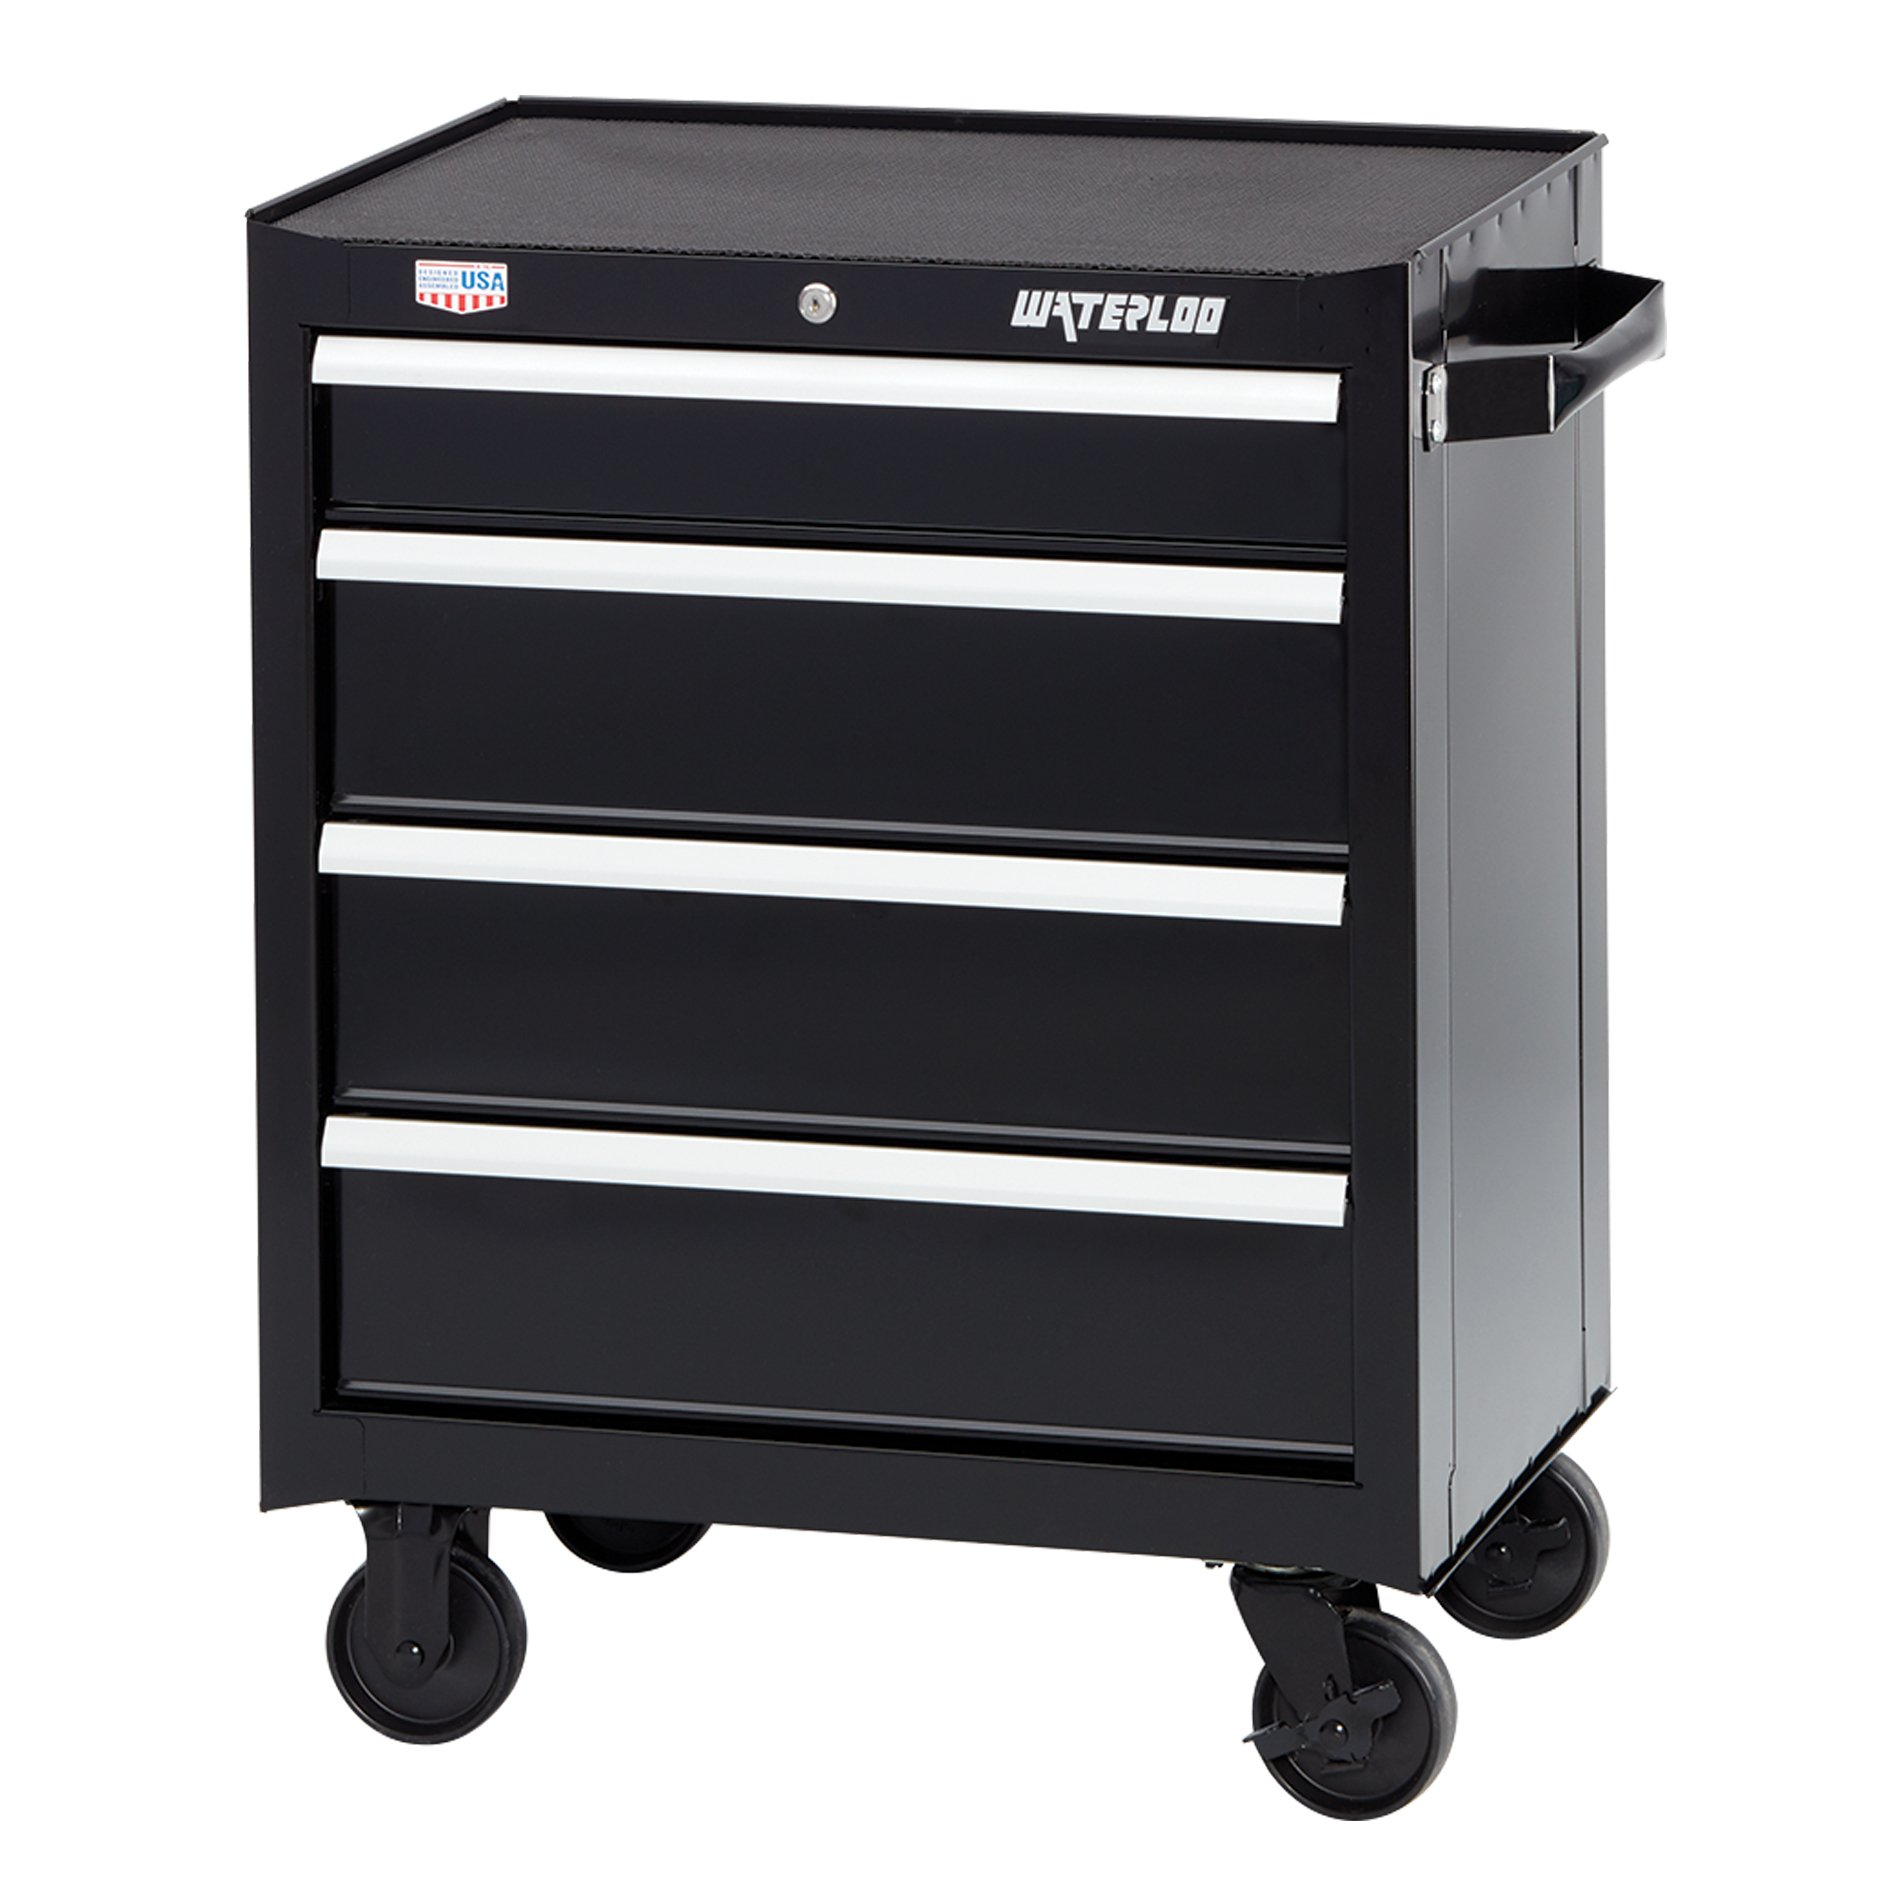 Waterloo W300 Series 4-Drawer Rolling Tool Cabinet, 26'' - Designed, Engineered & Assembled In the USA by Waterloo